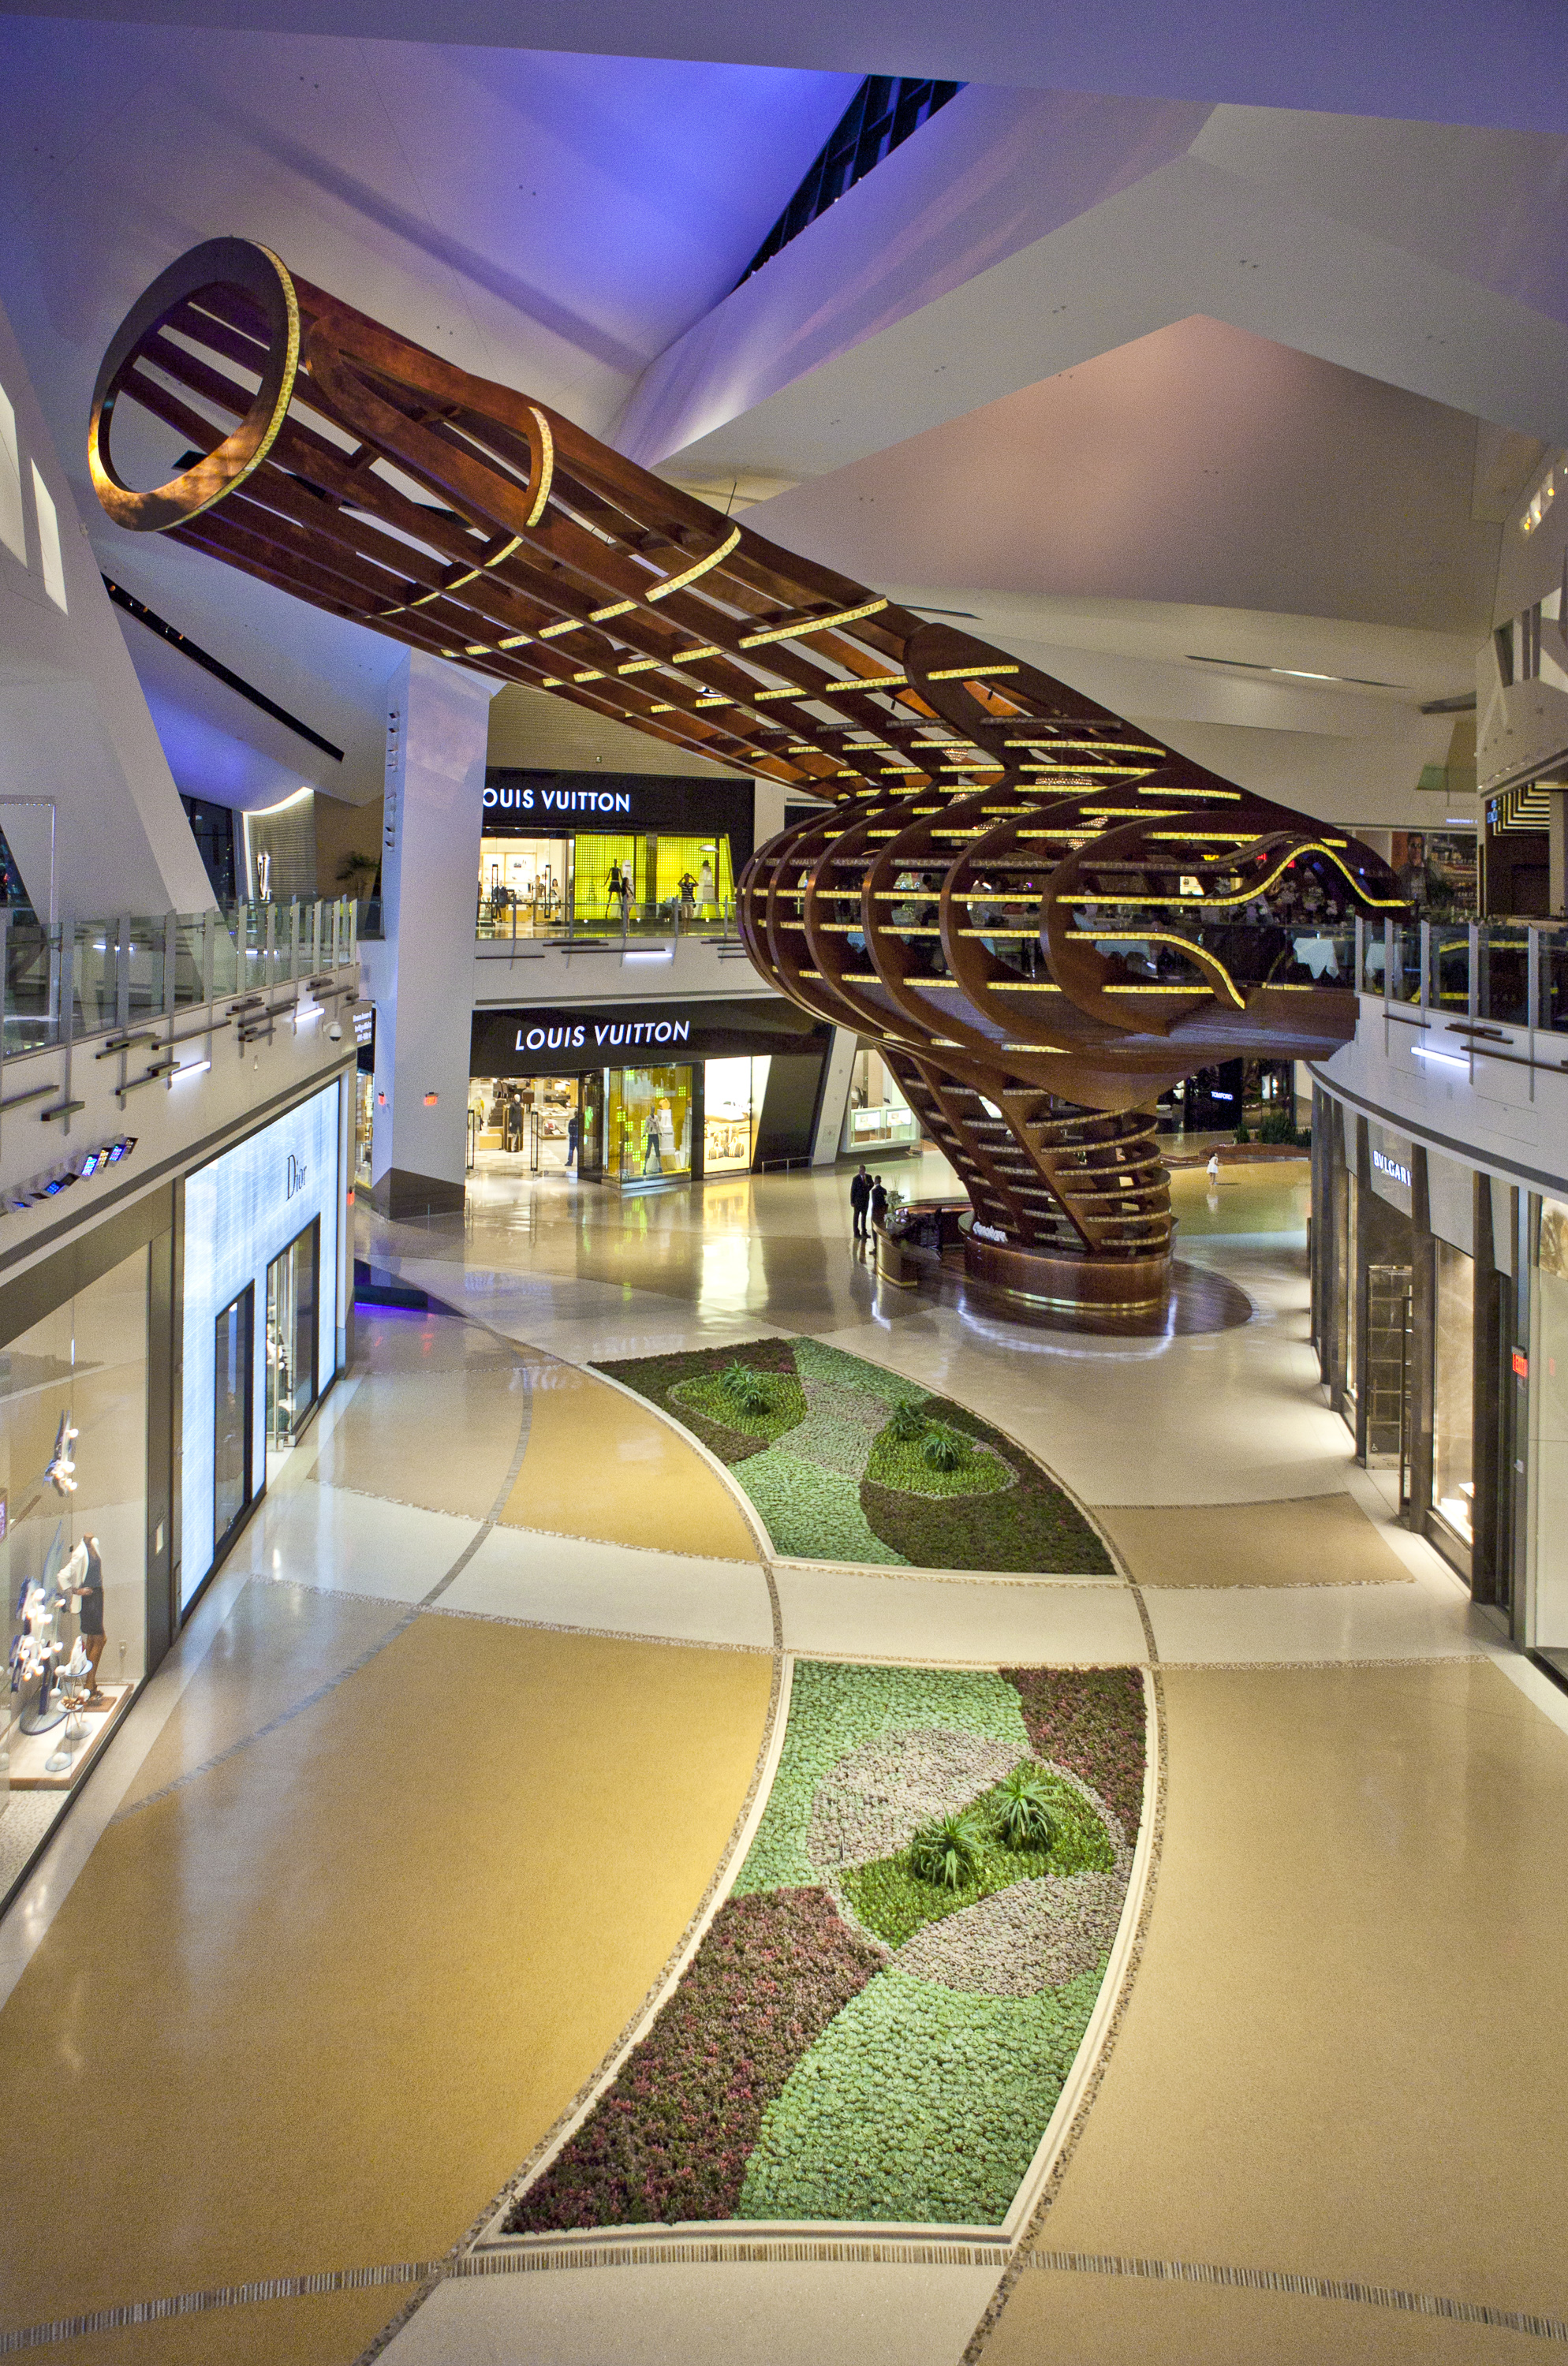 The Shops at Crystals